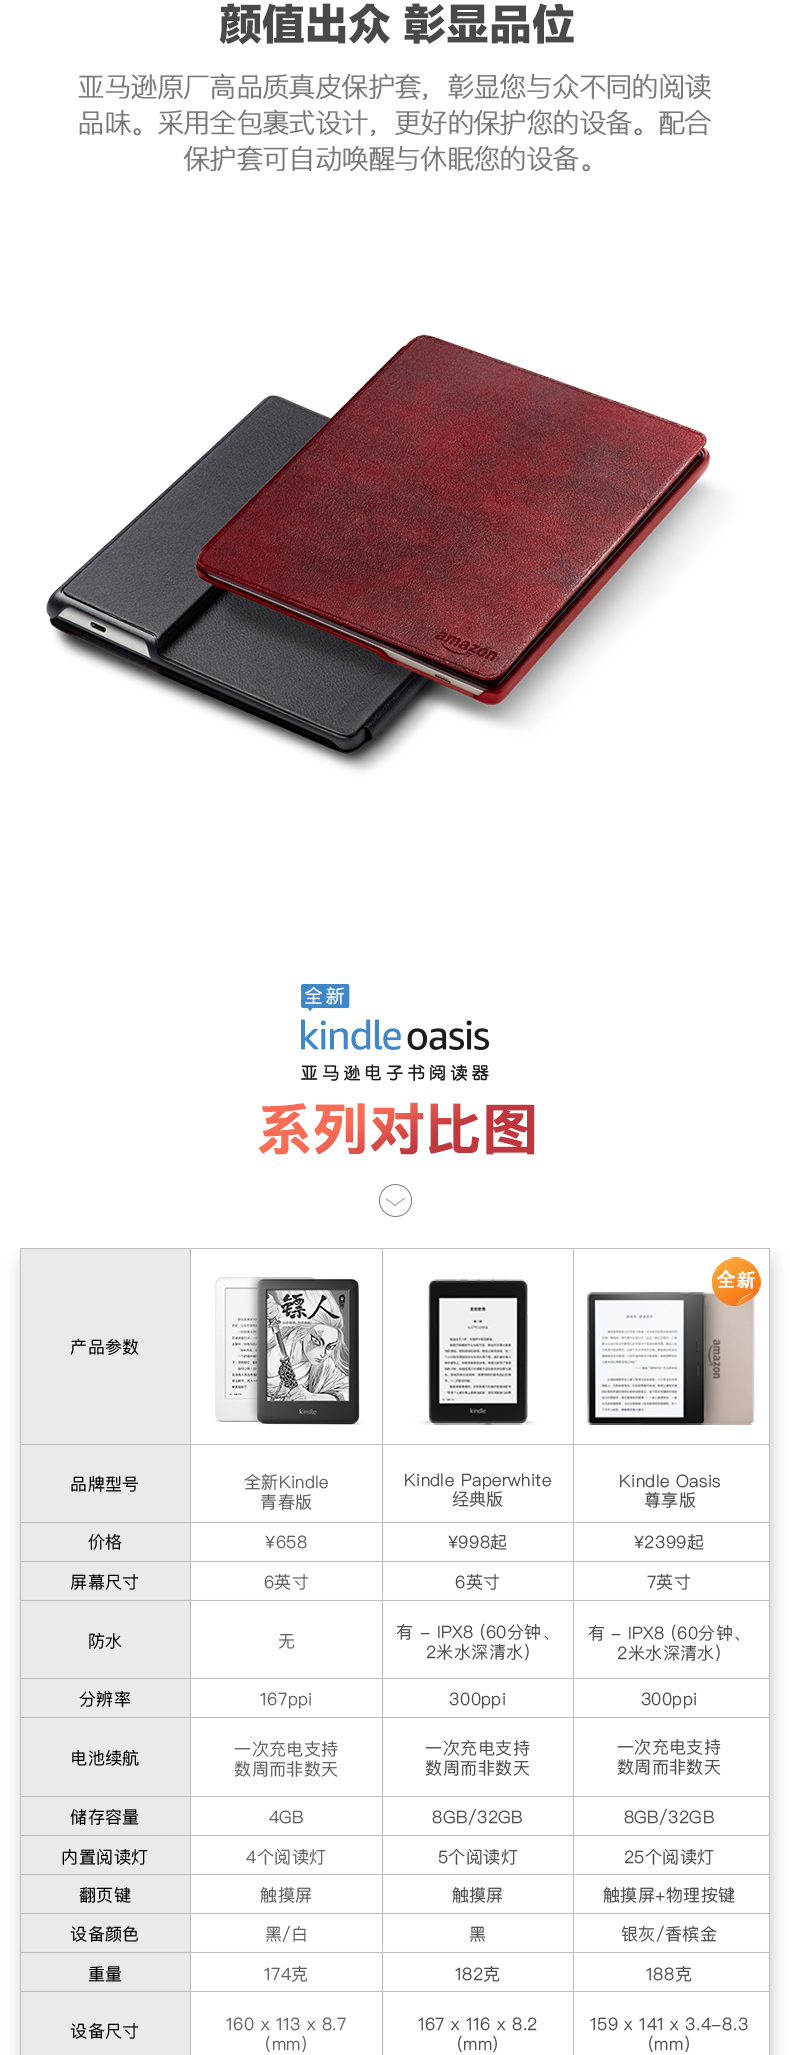 kindle oasis/paperwhite/new kindle比较